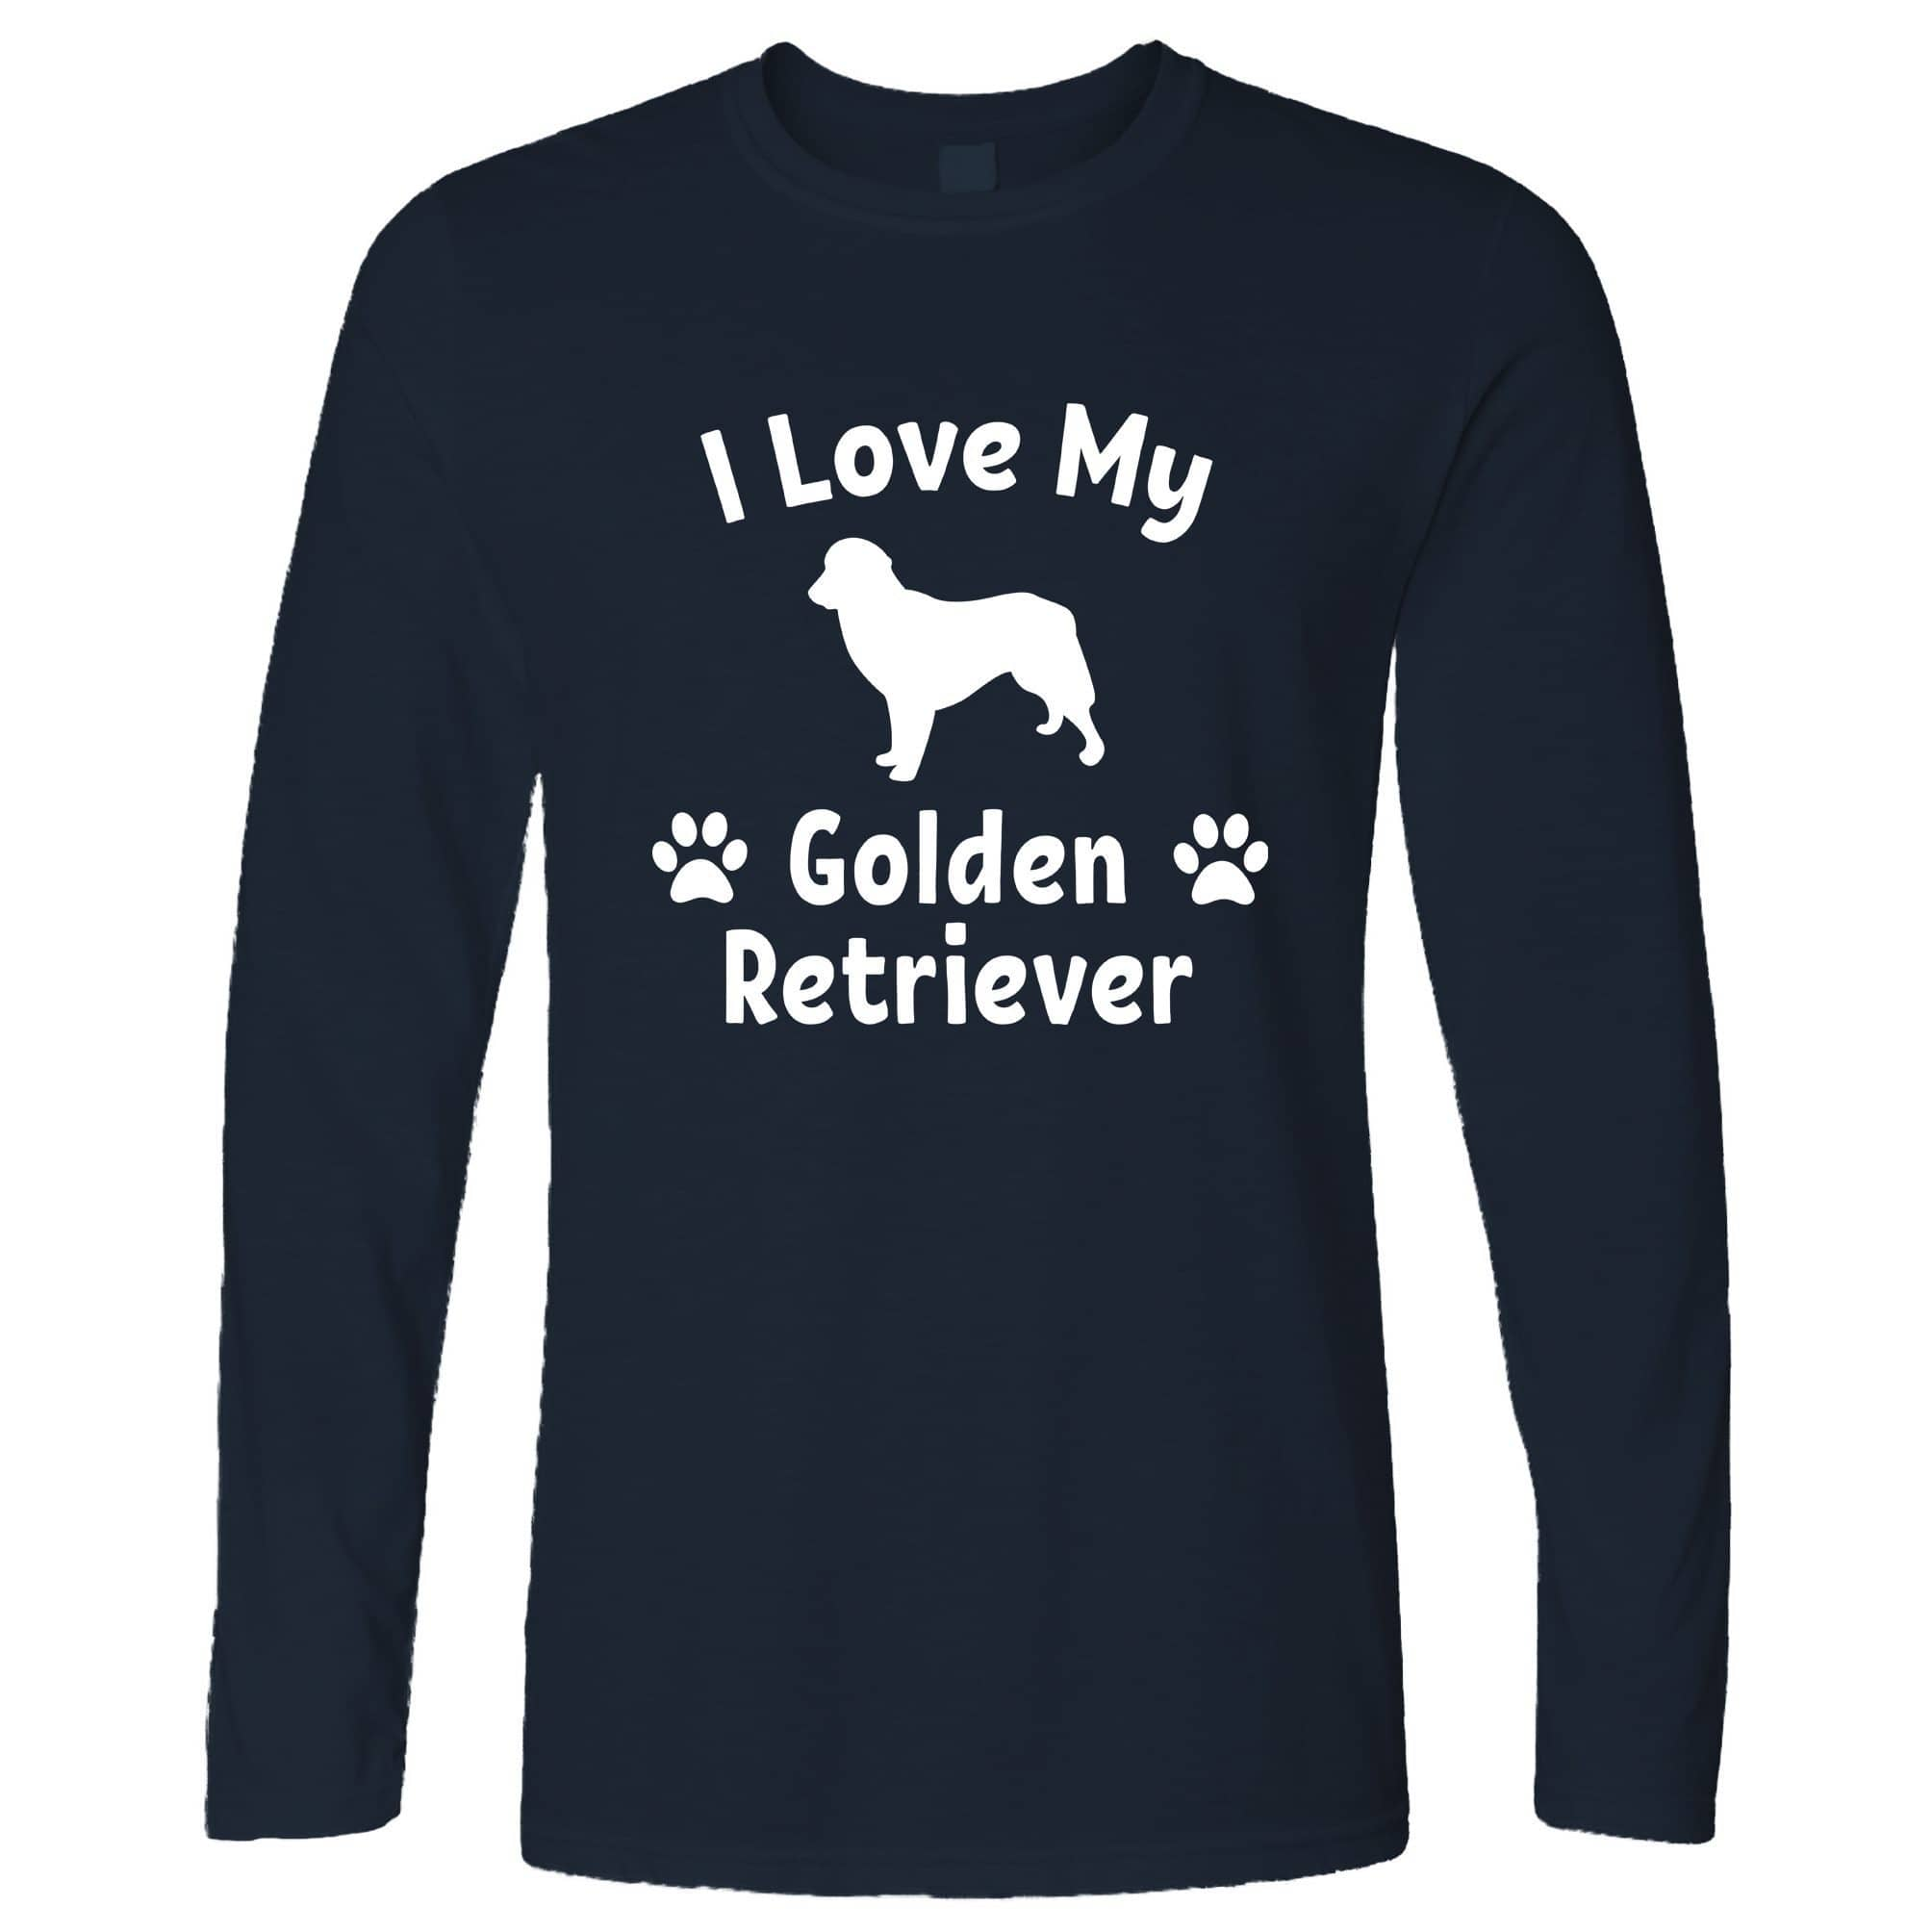 Dog Owner Long Sleeve I Love My Golden Retriever T-Shirt